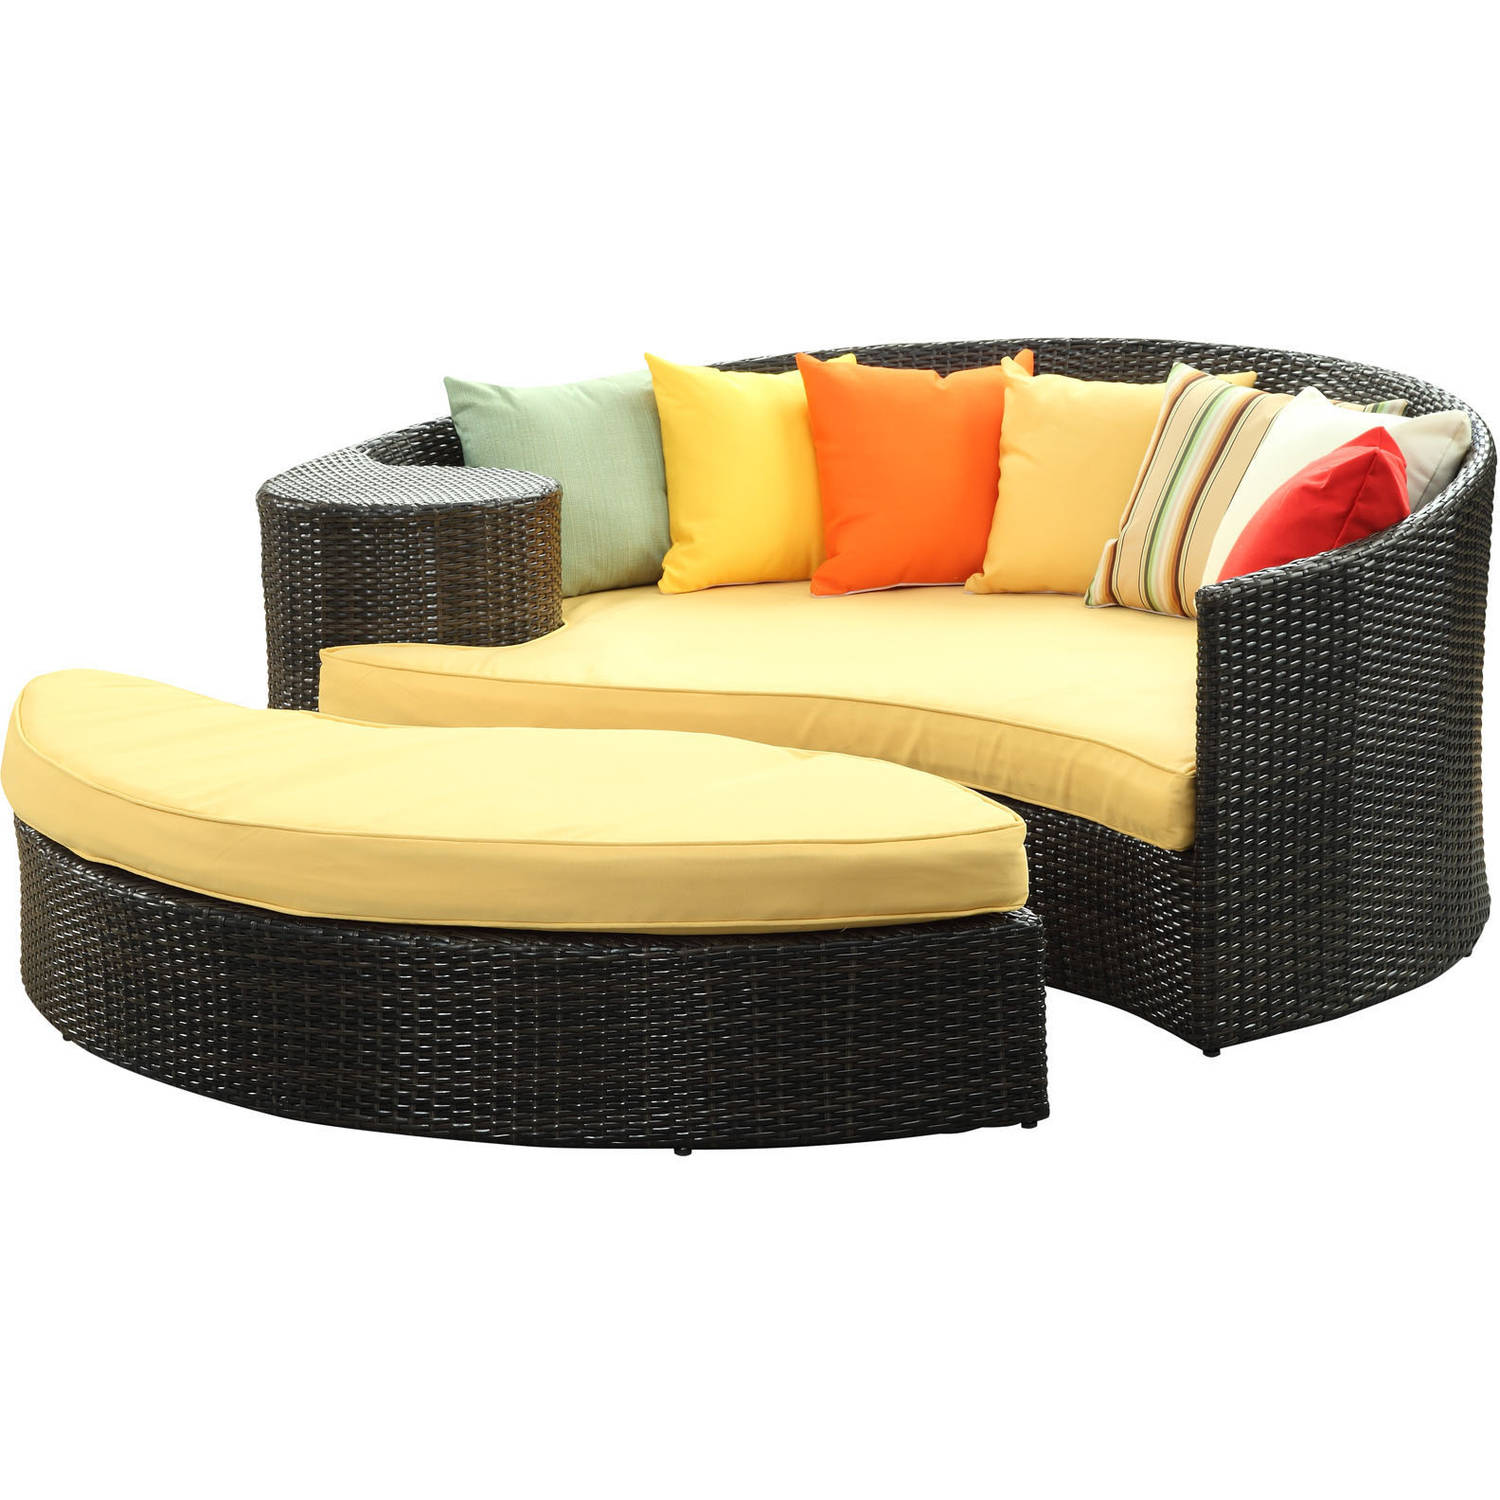 Modway Taiji Outdoor Patio Wicker Daybed, Multiple Colors